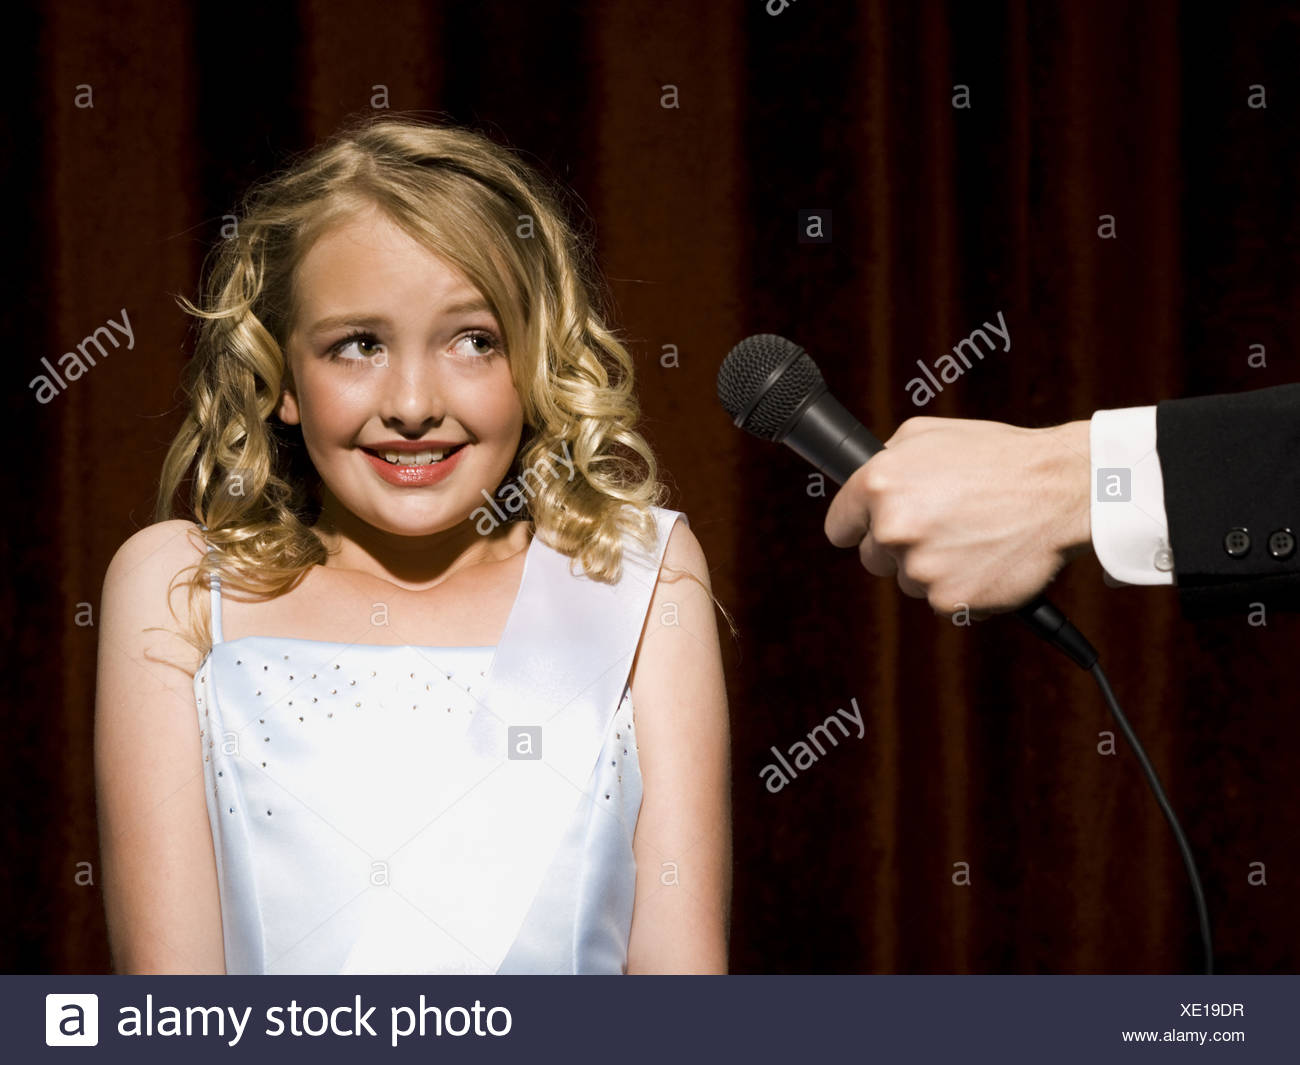 Girl beauty pageant contestant with microphone looking nervous - Stock Image